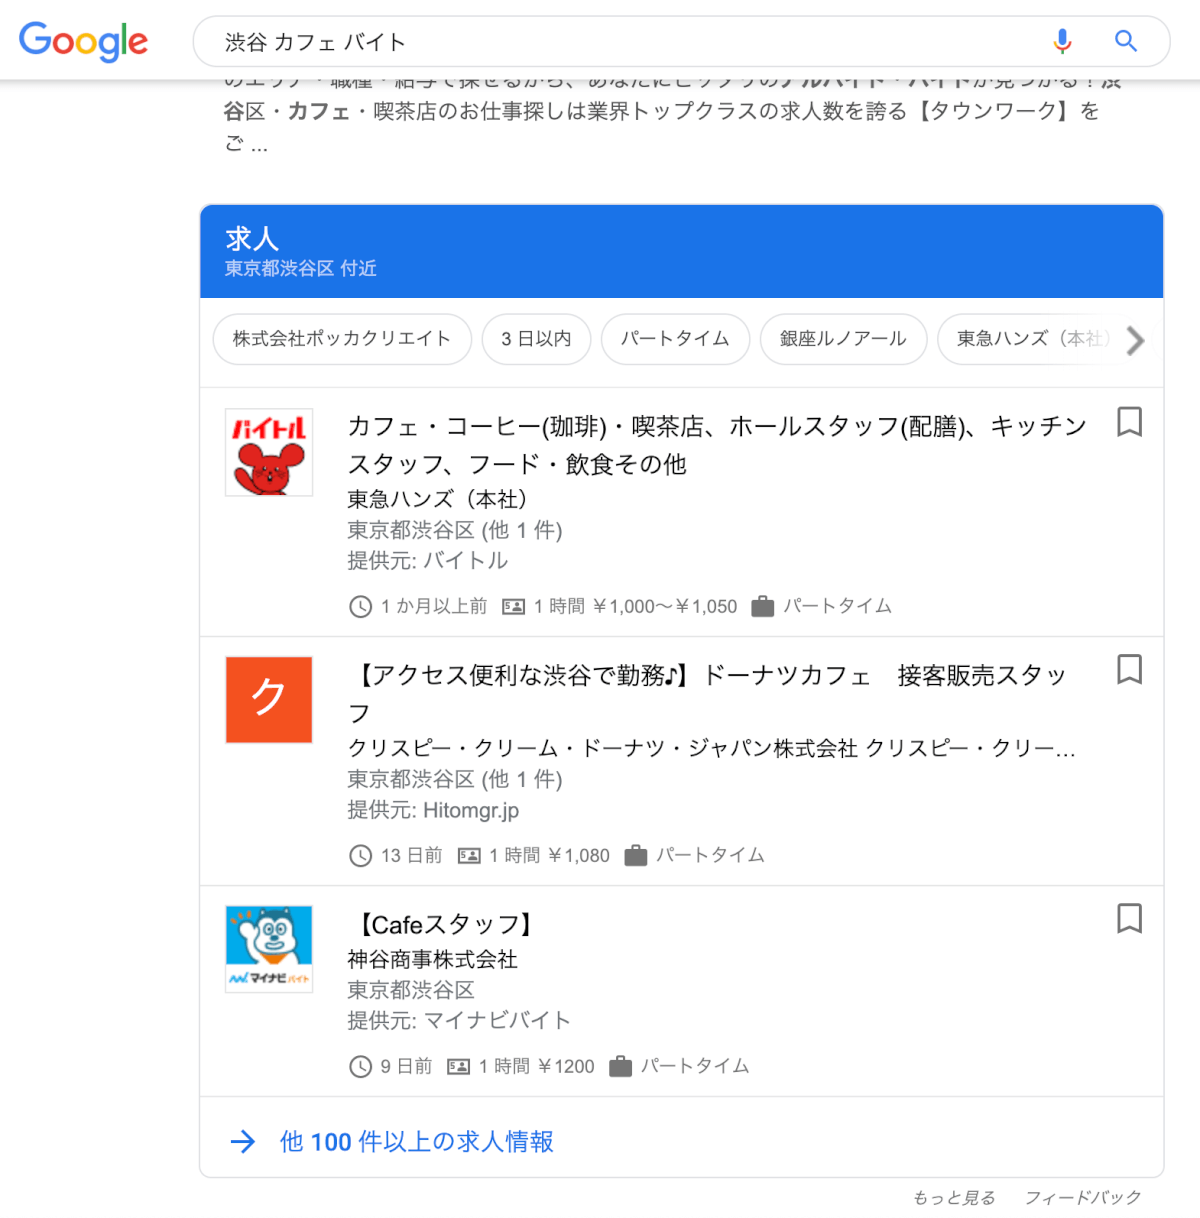 Google for Jobsのサンプル